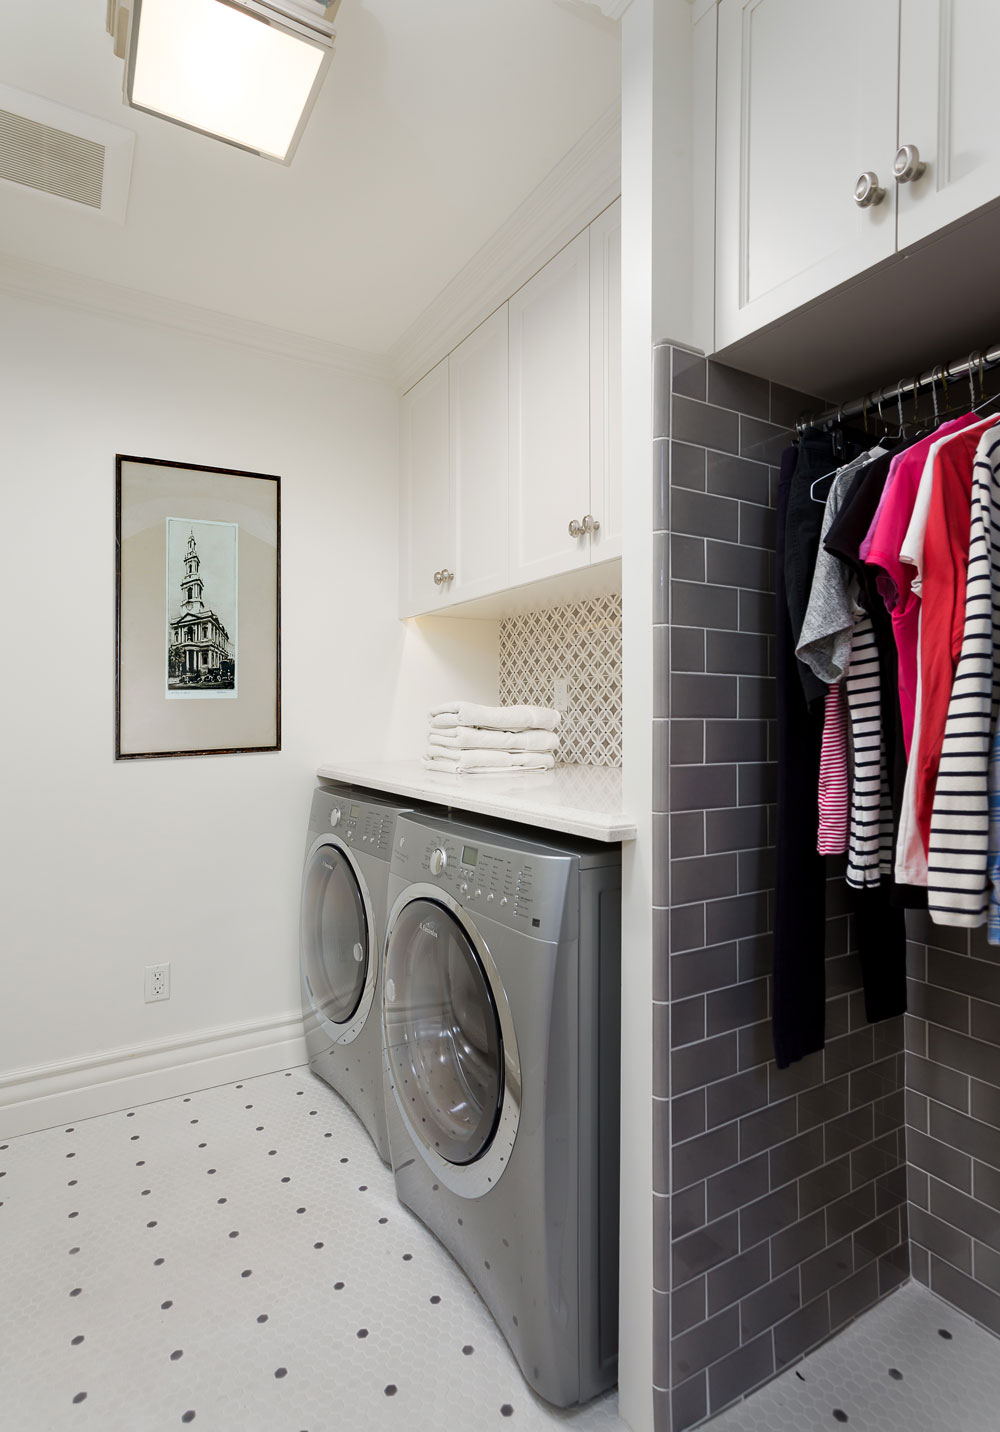 Chelsea-laundry-room-blackandwhite-grey.jpg